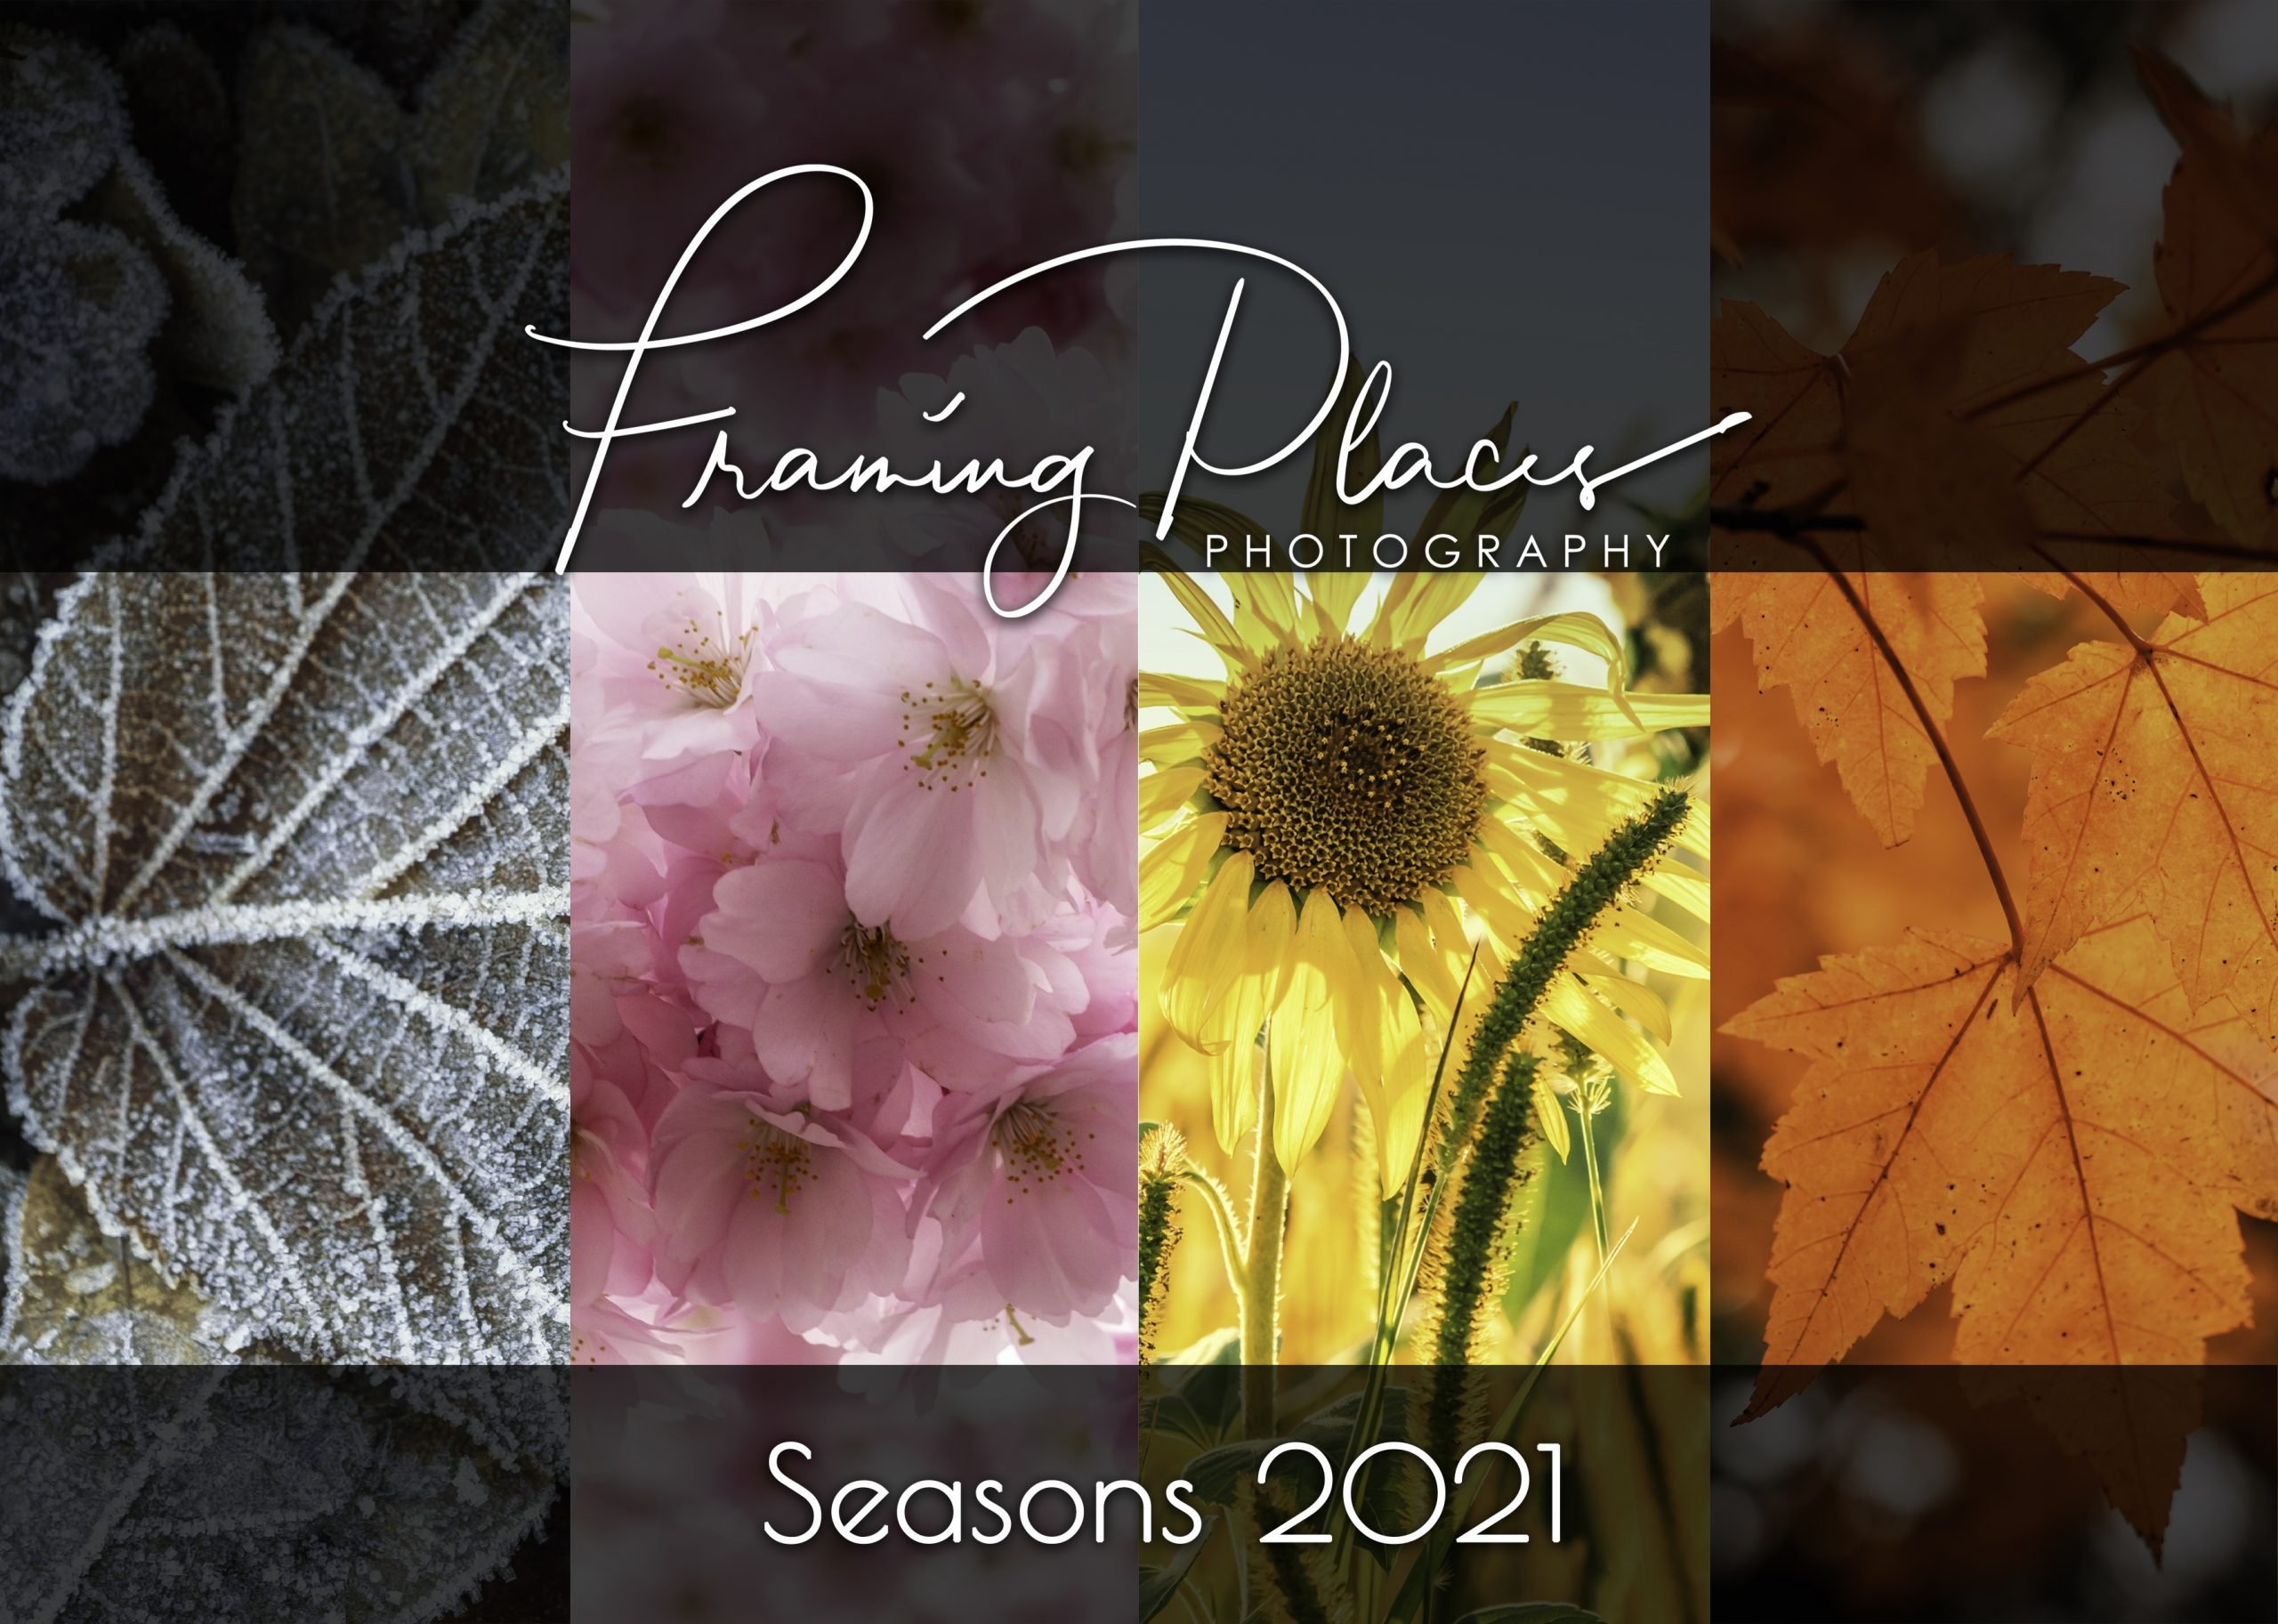 Seasons 2021 – The New Calendar Is Here! – Framing Places